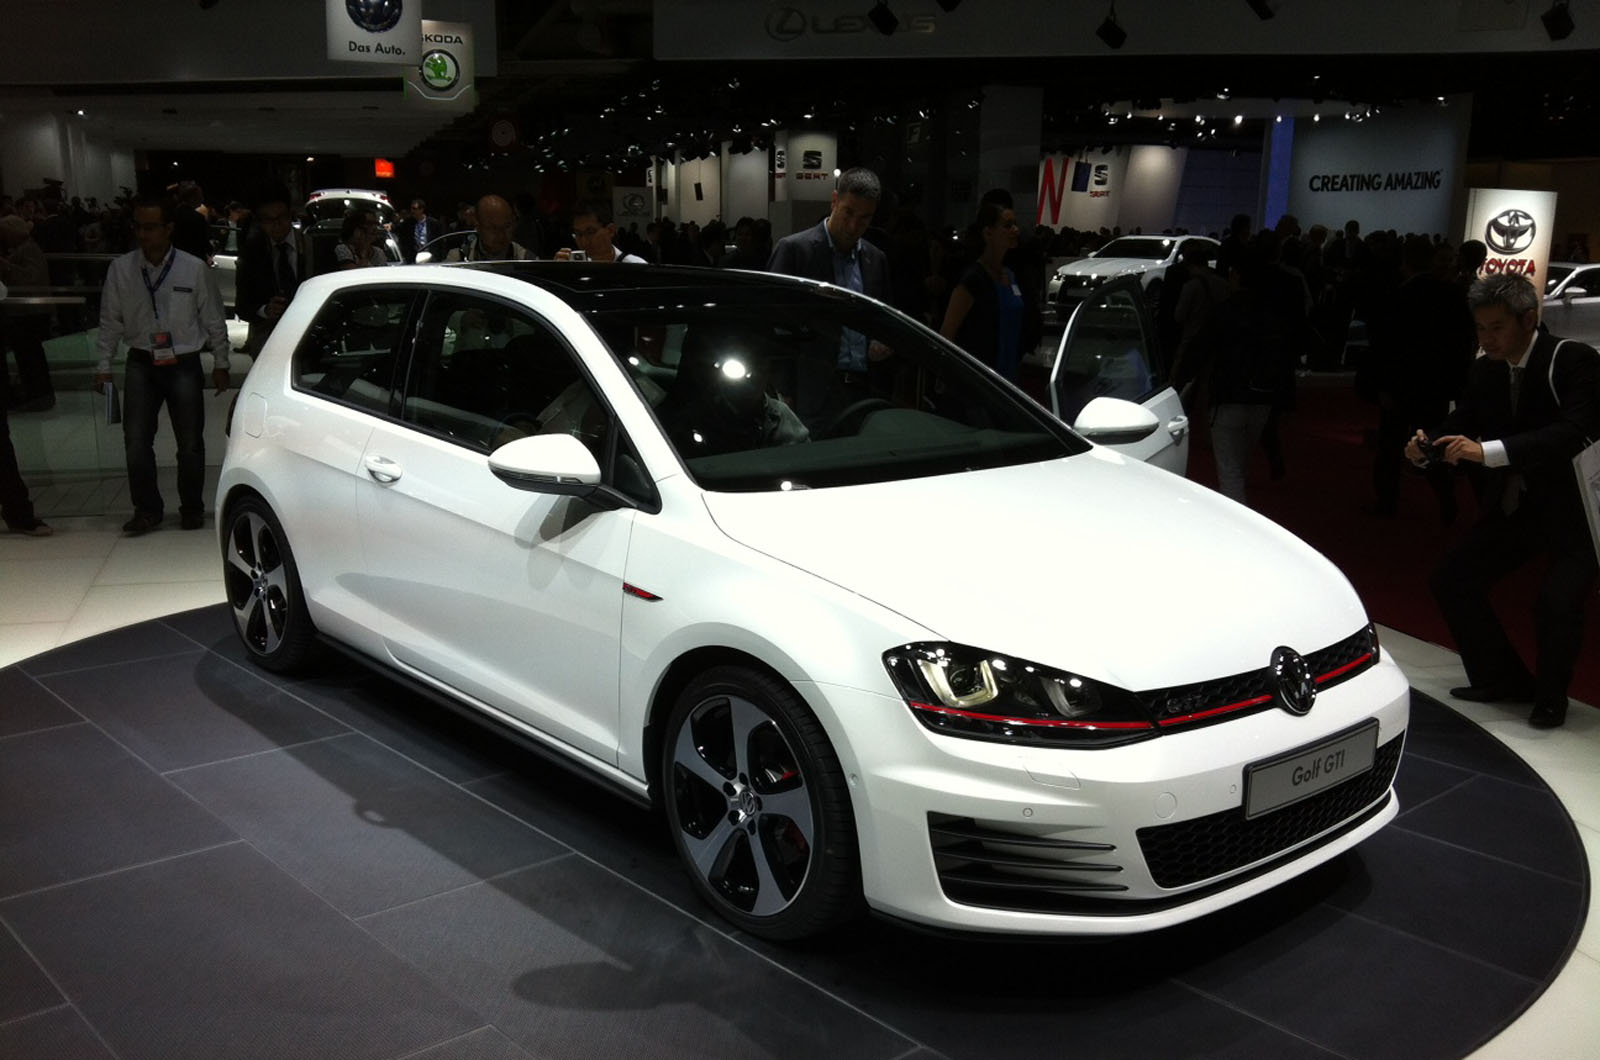 Vw Shows New Golf Gti Car News Premium Hatchbacks